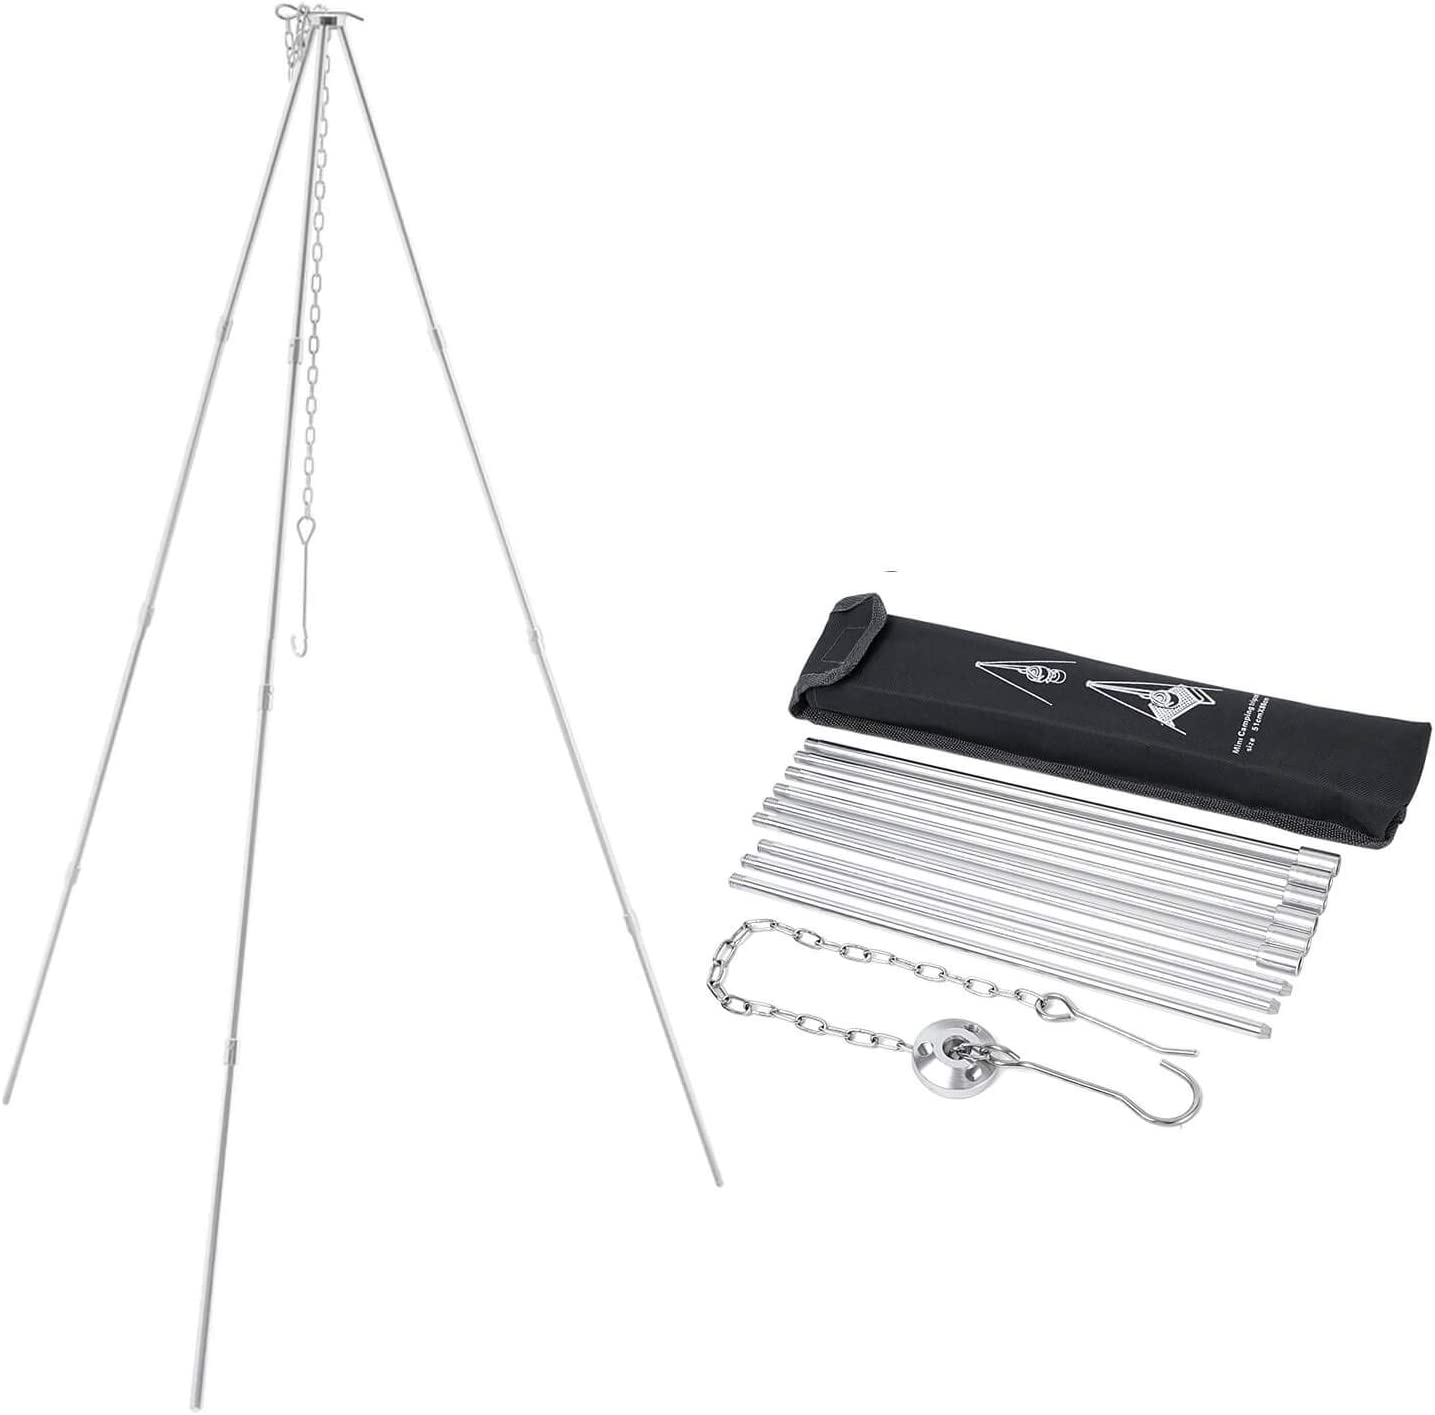 OutyFun Camping Tripod, Upgraded 4-Section Bracket PortableLightweight Al-Alloy Grill Stand with Adjustable Hang Chain for Hanging Pot and Campfire